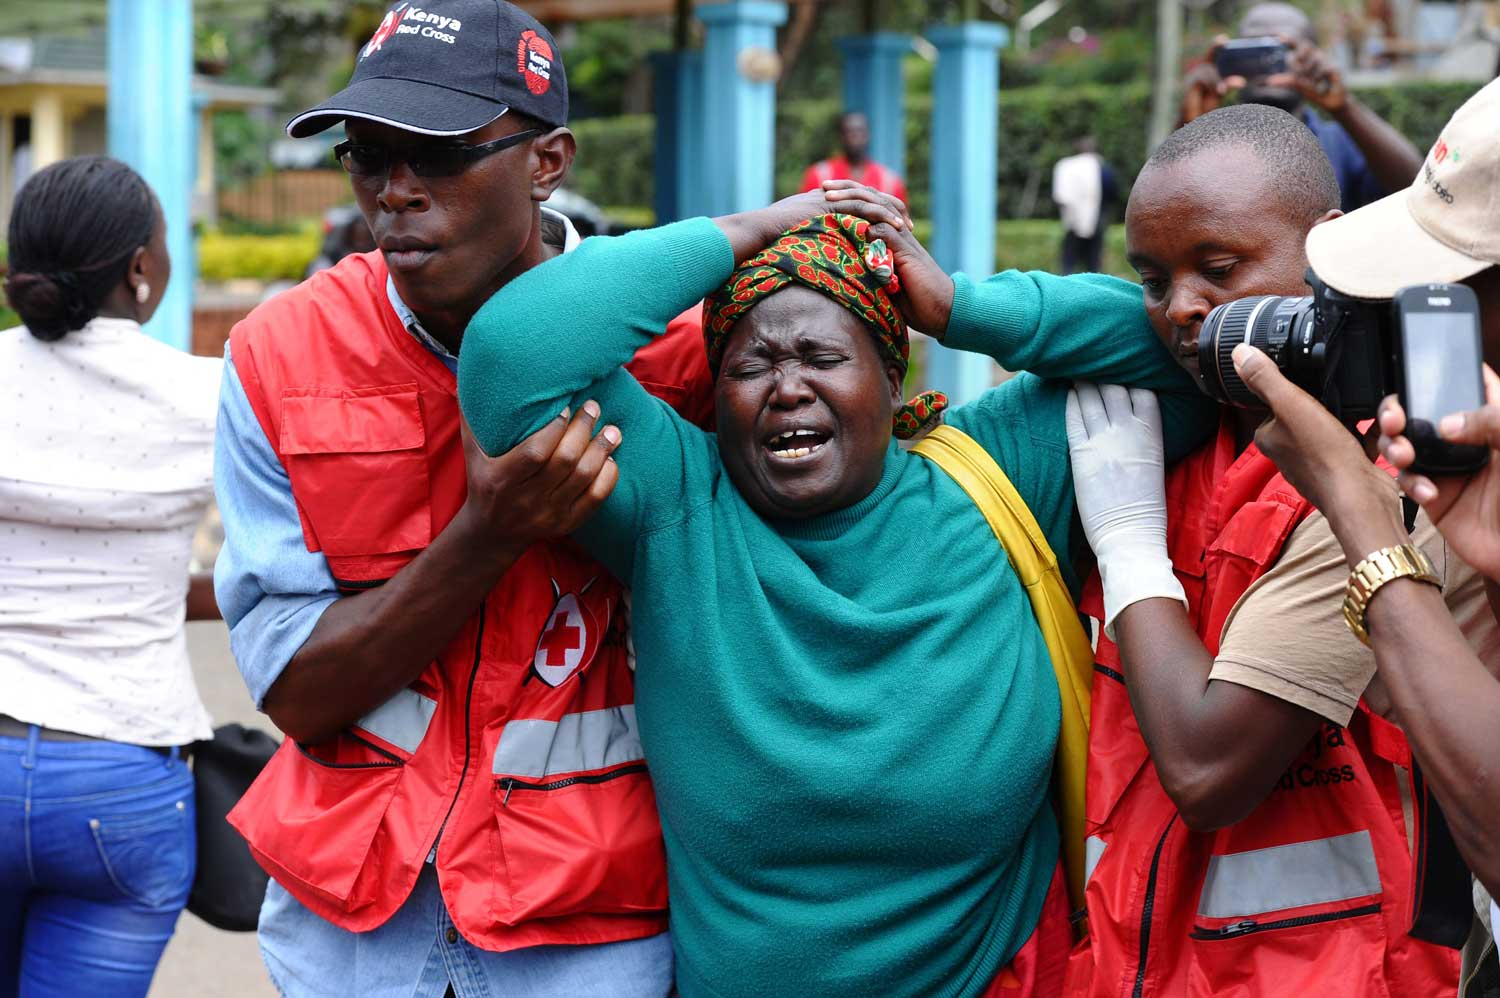 A woman is stricken with grief after the Garissa University College attack. The shockwaves led local communities to come together in rejecting further violence. Photo:Stringer/AP/REX/Shutterstock